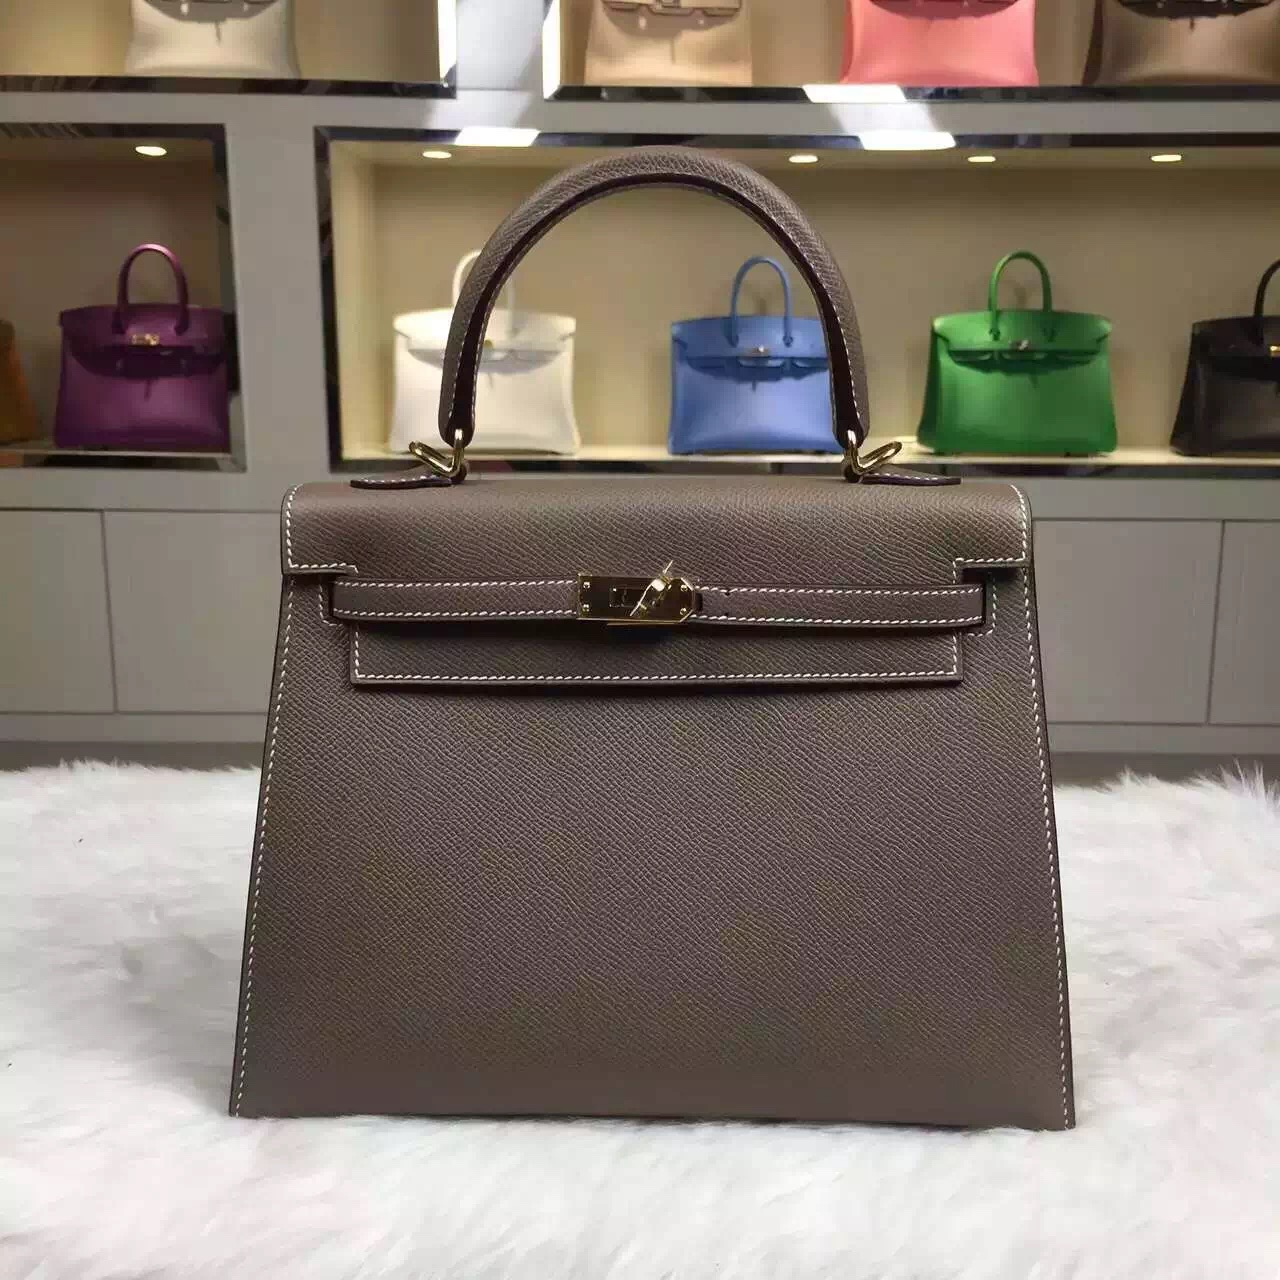 hermes canvas tote bag - Hand Stitching Hermes Kelly Bag 25CM C81 Etoupe Grey Epsom Leather ...